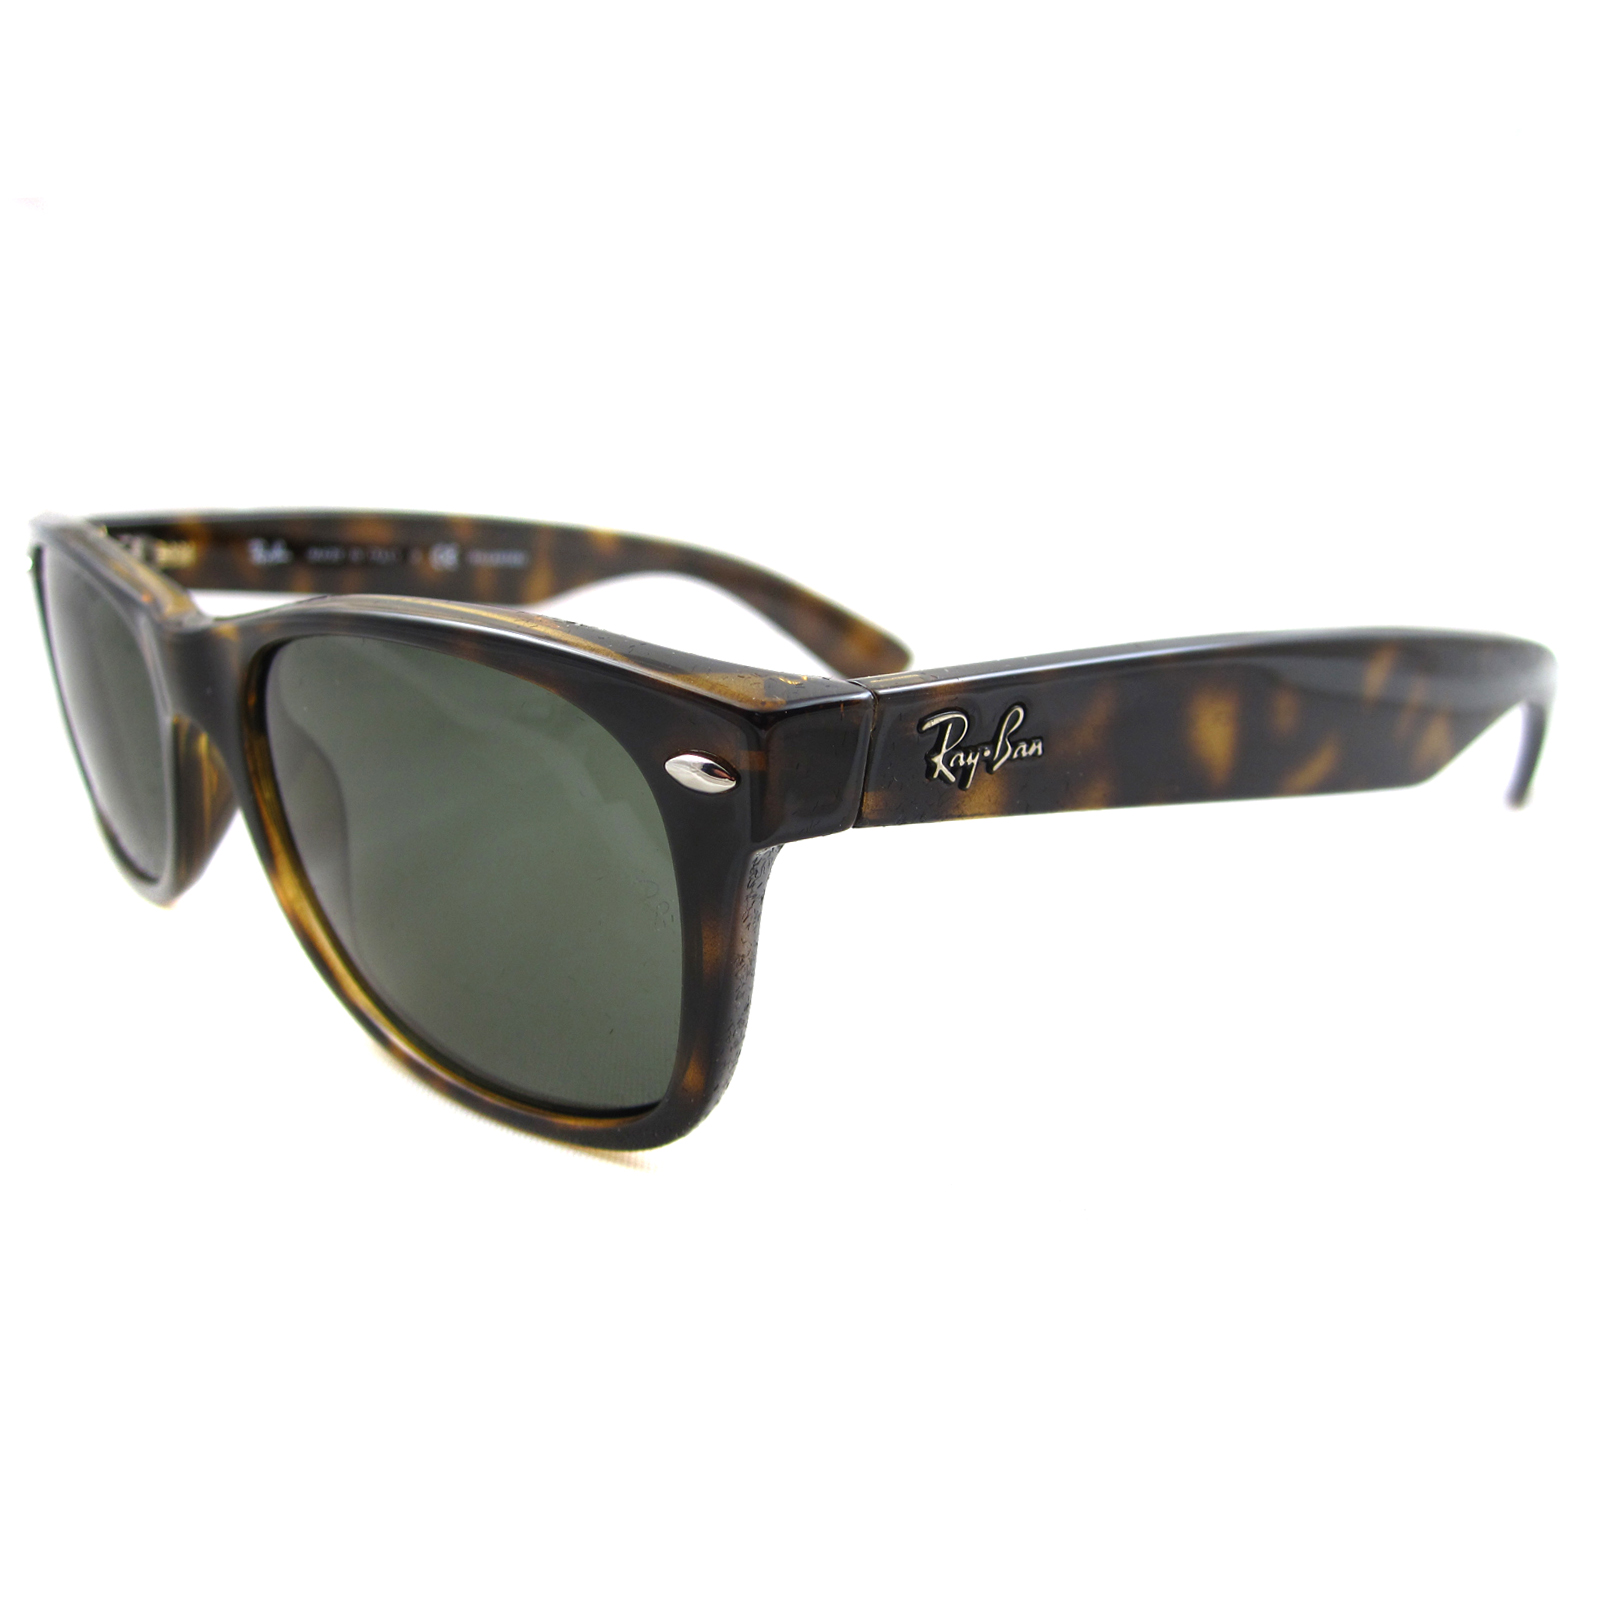 ray ban sunglasses new wayfarer 2132 902 58 tortoise green. Black Bedroom Furniture Sets. Home Design Ideas